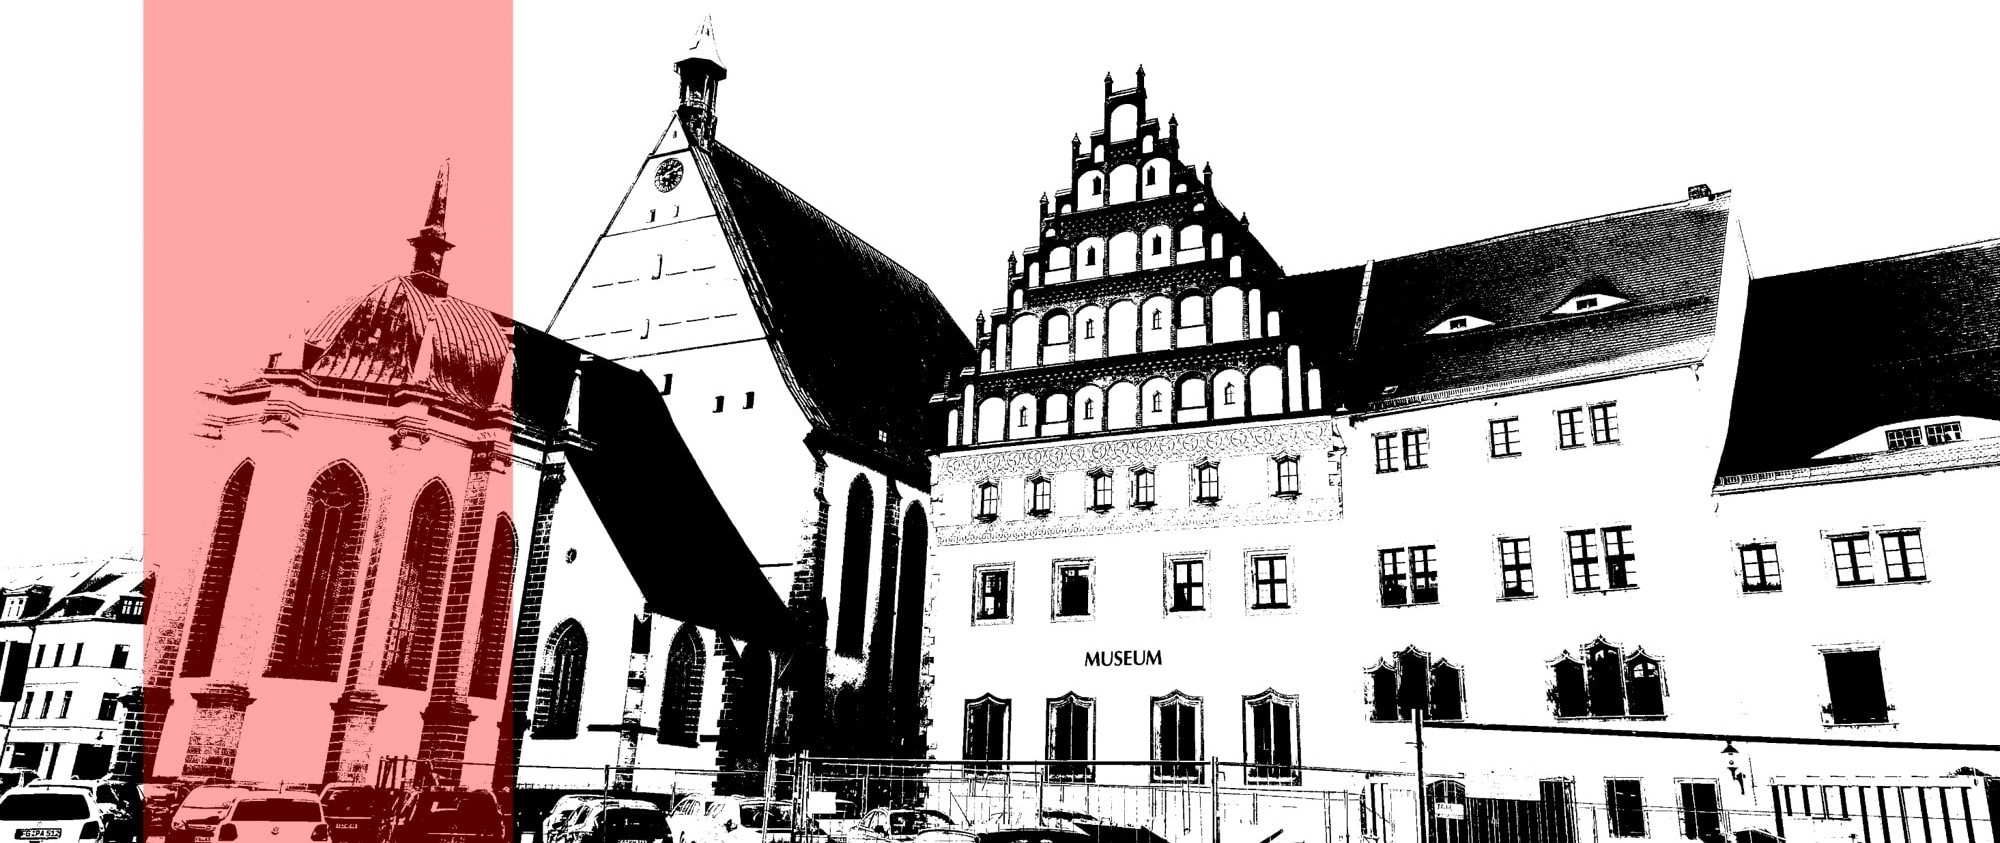 The view of the buildings in the town